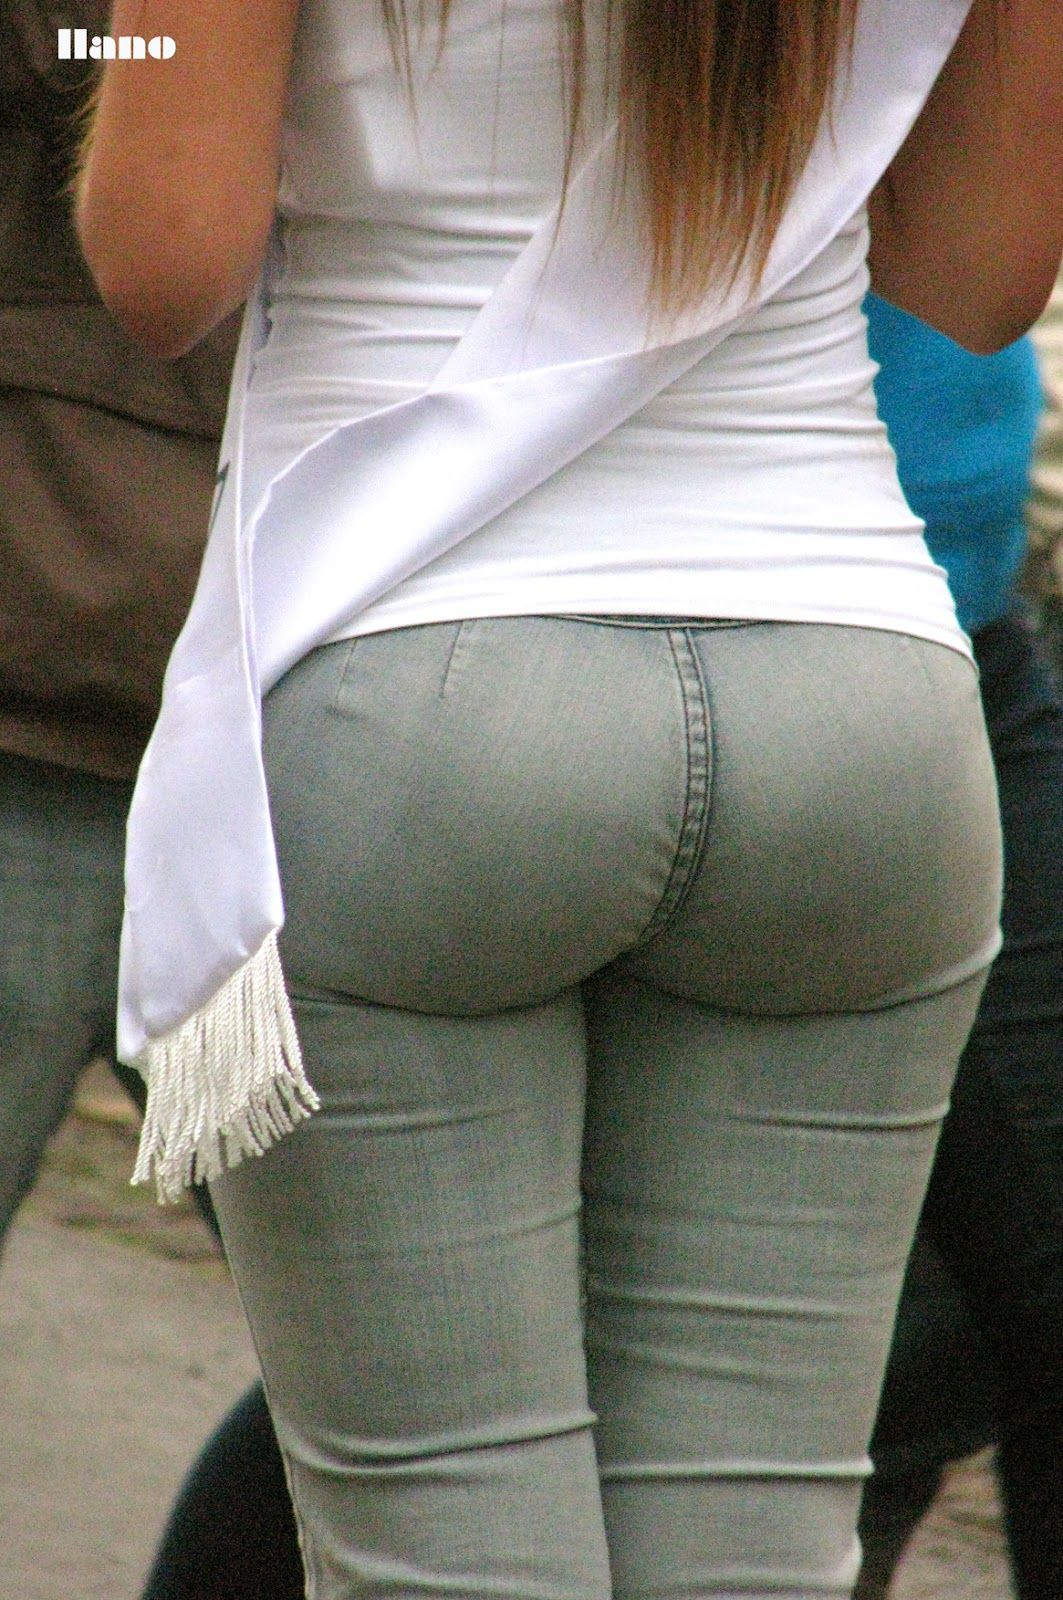 girls jean shorts ass | divine butts - voyeur blog: round perfect